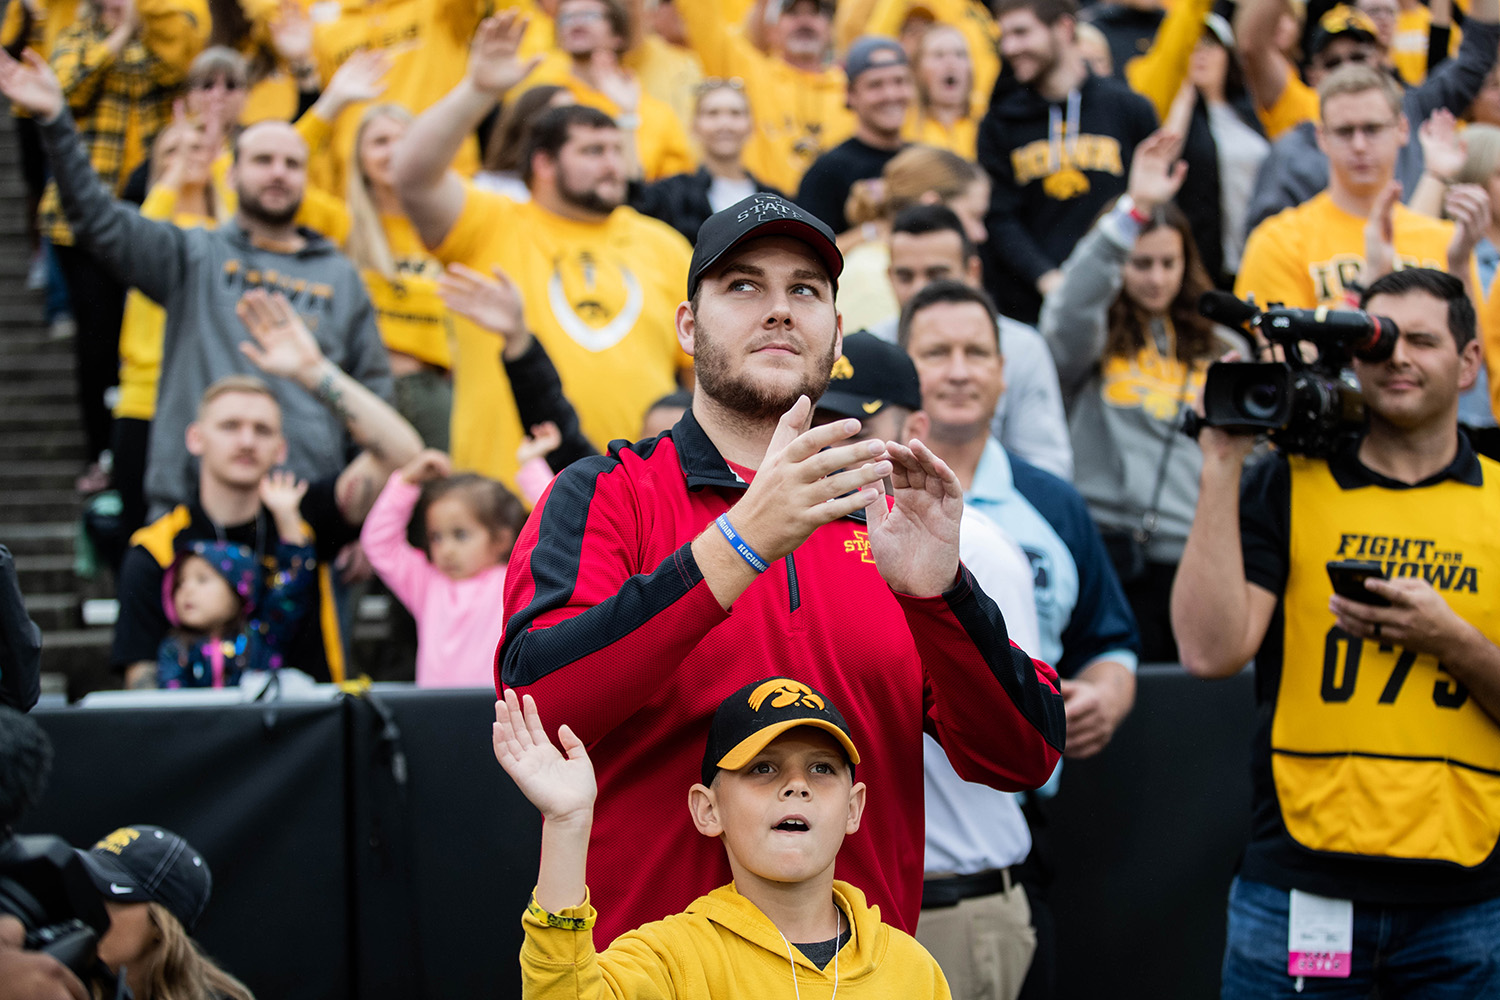 Carson King claps during a football game between Iowa and Middle Tennessee State University on Saturday, September 28, 2019. The Hawkeyes defeated the Blue Raiders 48-3.